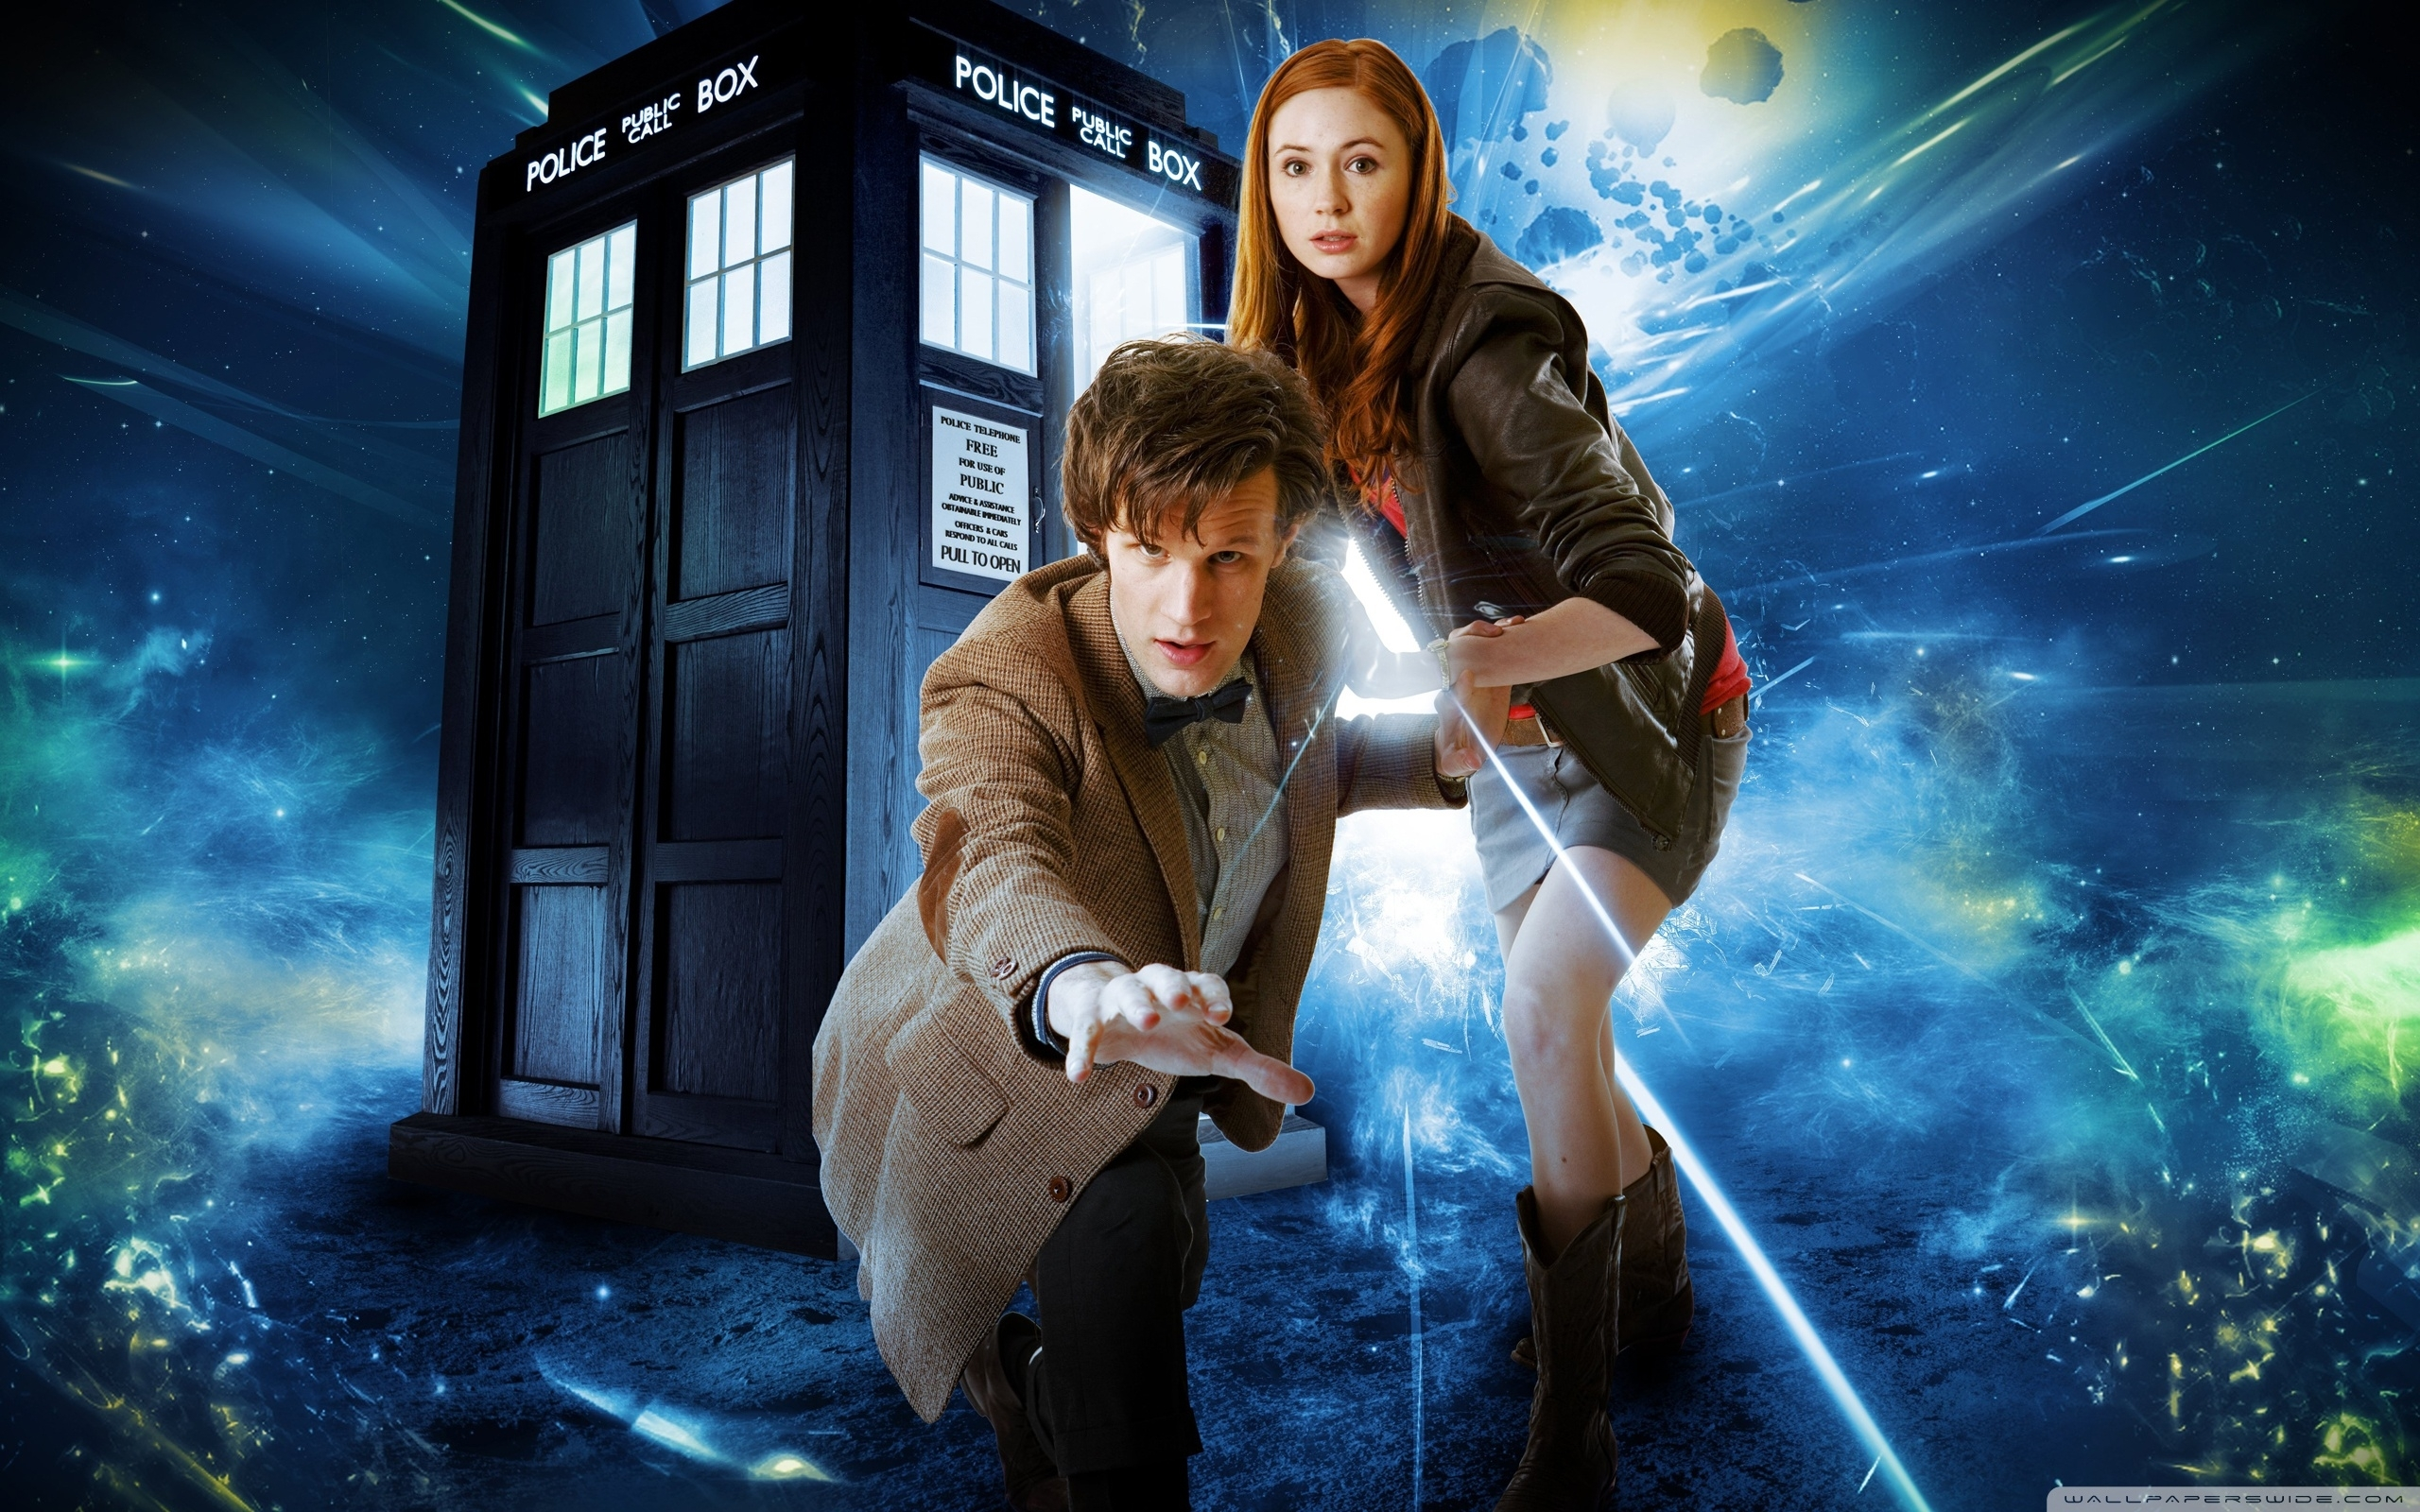 doctor who matt smith and karen gillan ❤ 4k hd desktop wallpaper